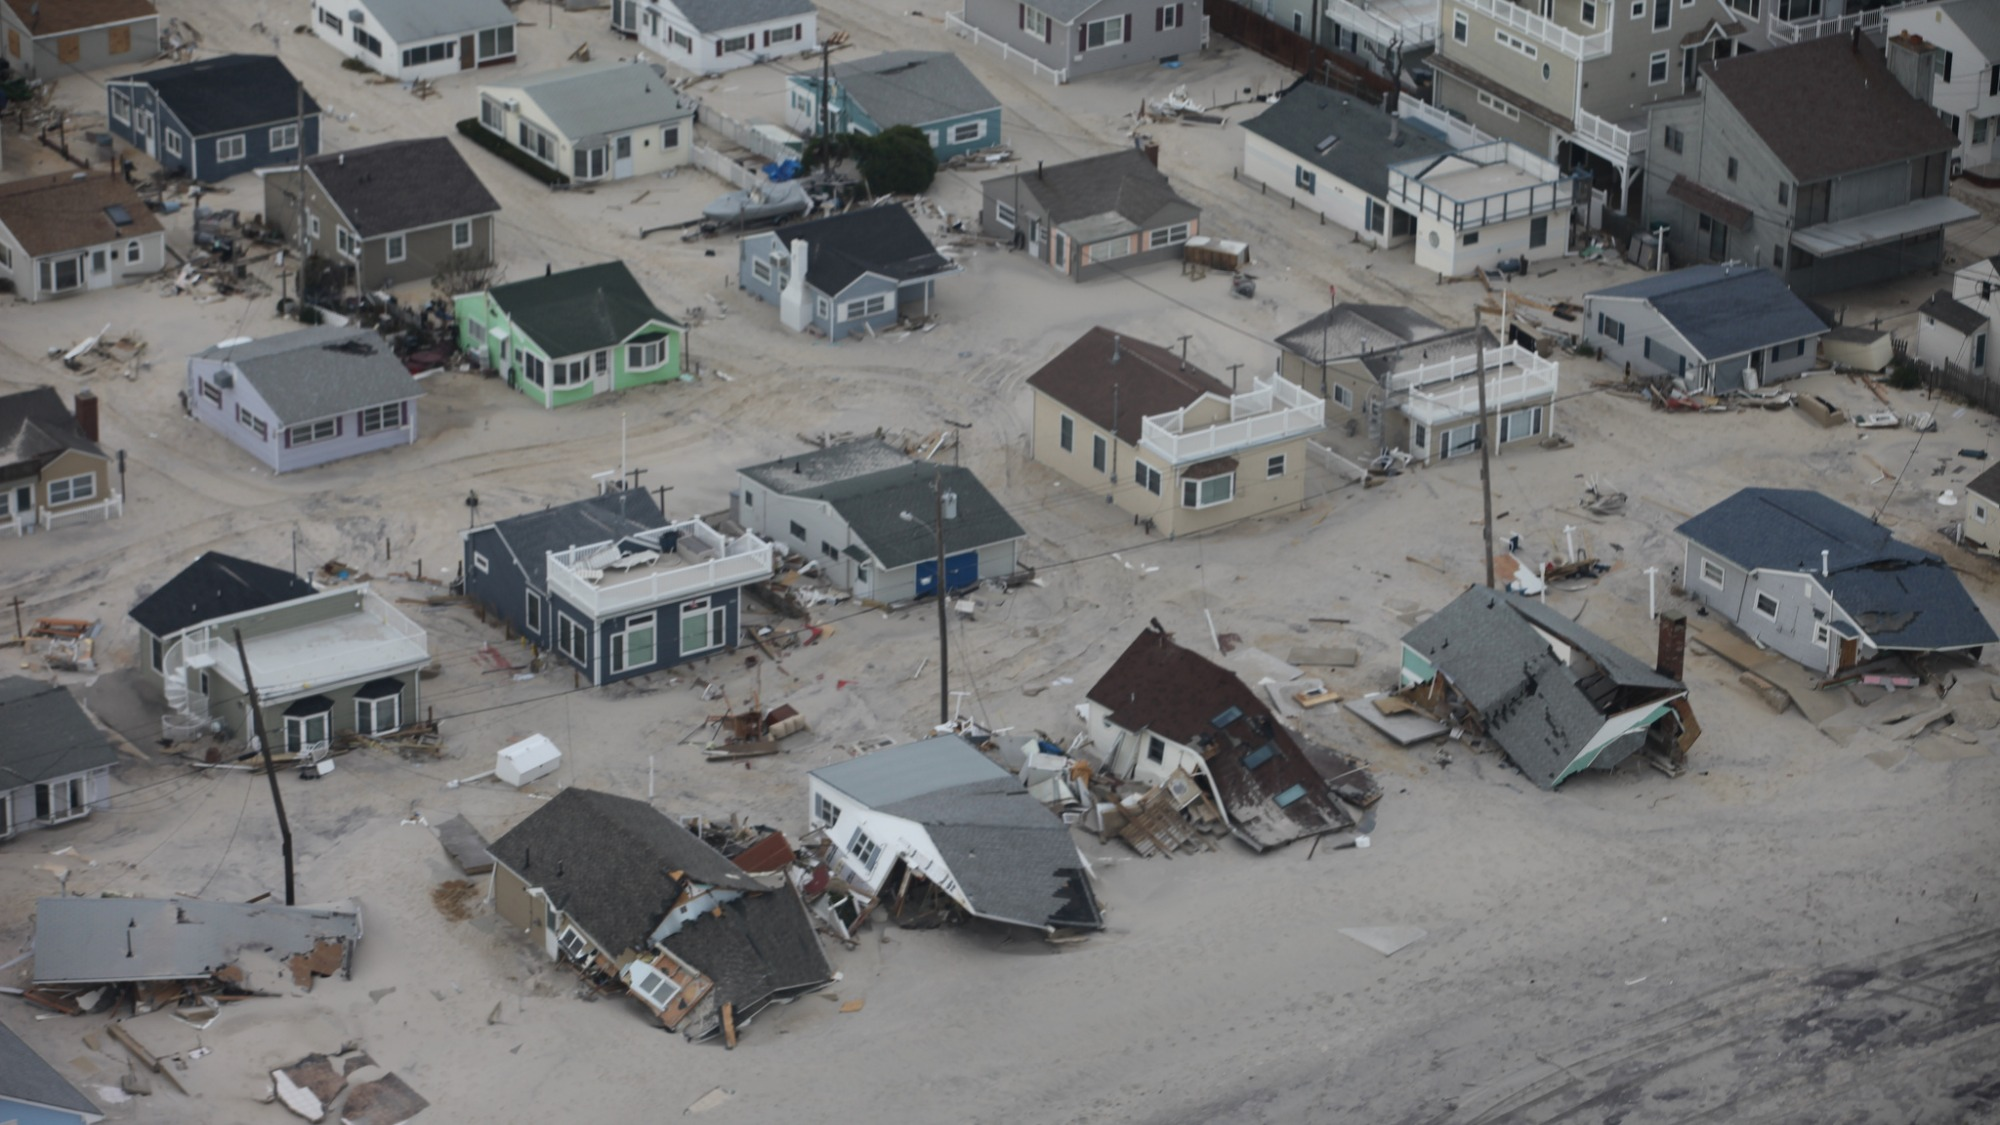 New Jersey after Sandy